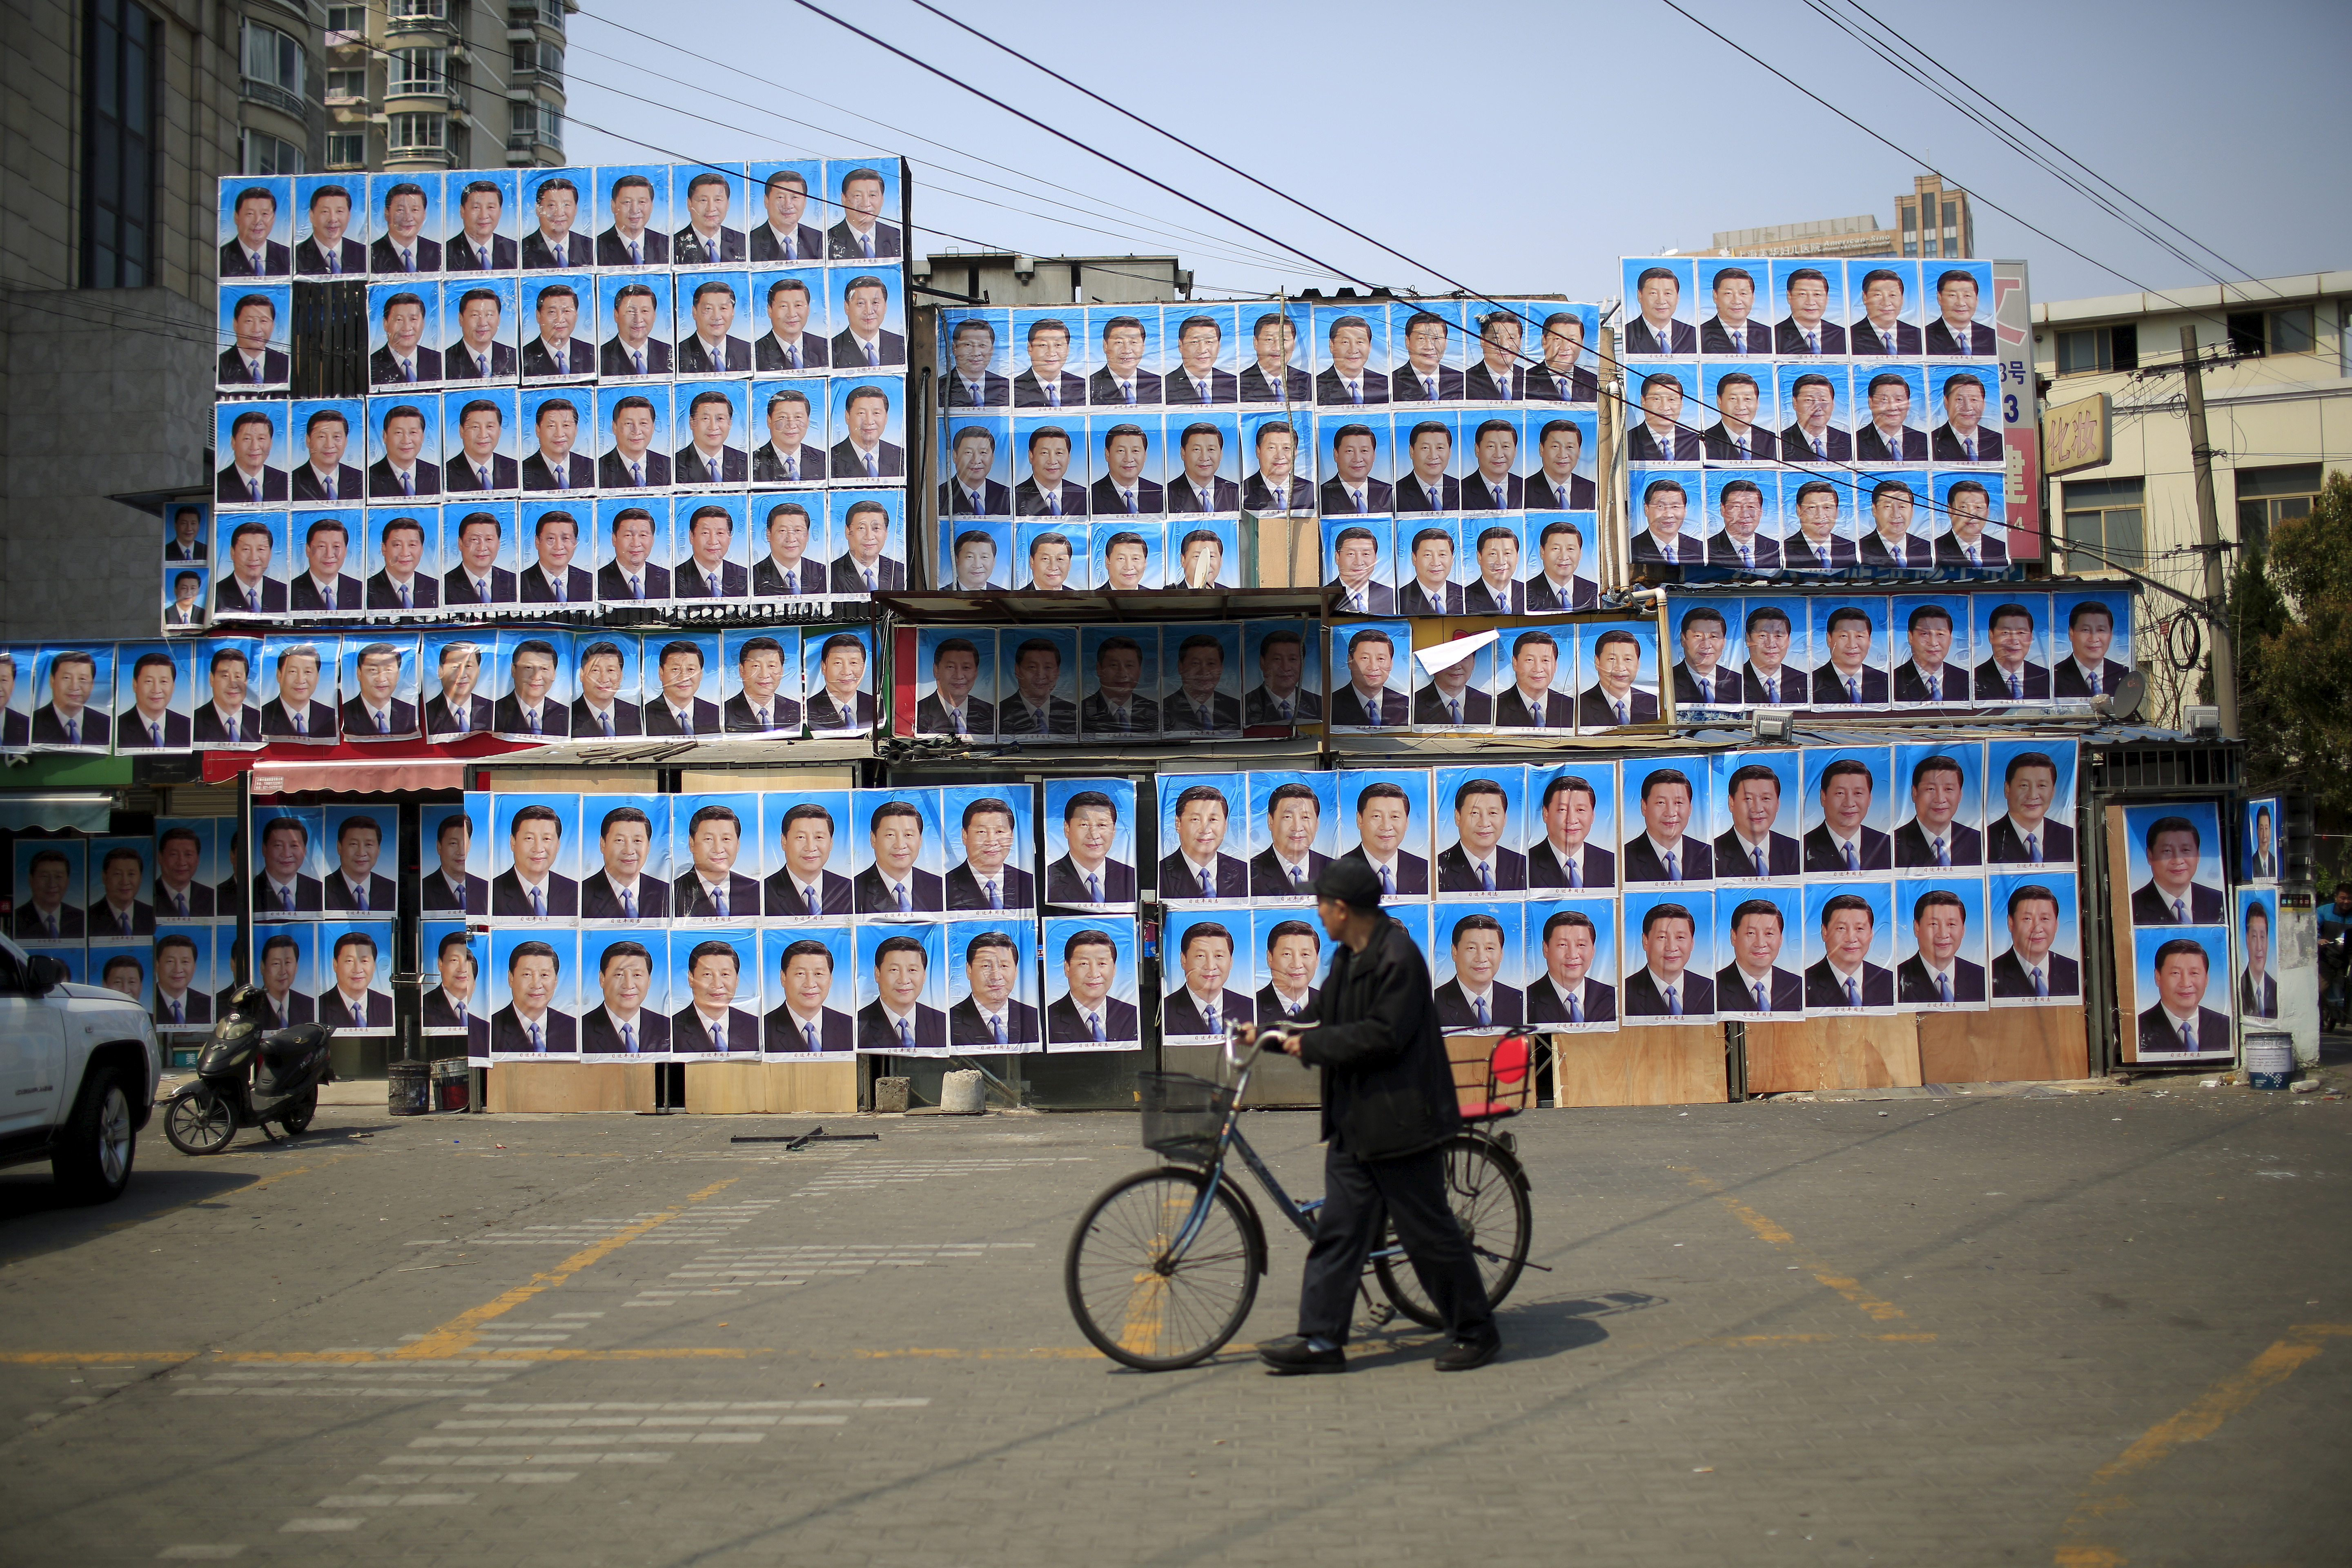 A man with a bicycle walks past a building covered in hundreds of posters of Chinese President Xi Jinping in Shanghai on March 26, 2016